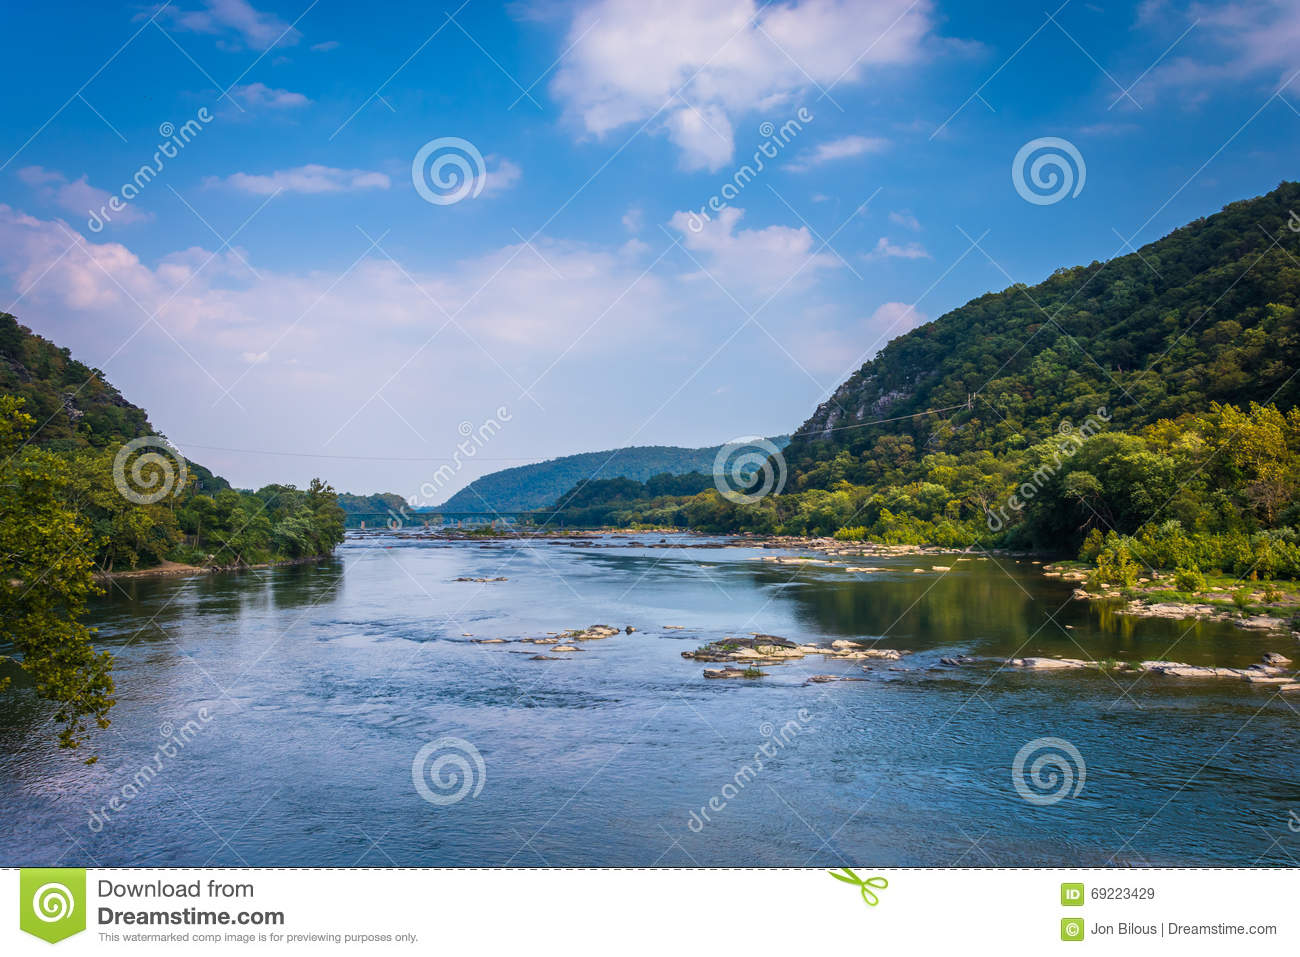 charleston west virginia home and design html with West Virginia Outline Map Set on Check privateopen 01 furthermore Drinking Water Running Out In Charleston West Virginia After Chemical Spill 20140111 Hv80i besides Office Supply Tulsa furthermore Preschool Christmas Tree Ornaments together with 38635 Oakhurst.